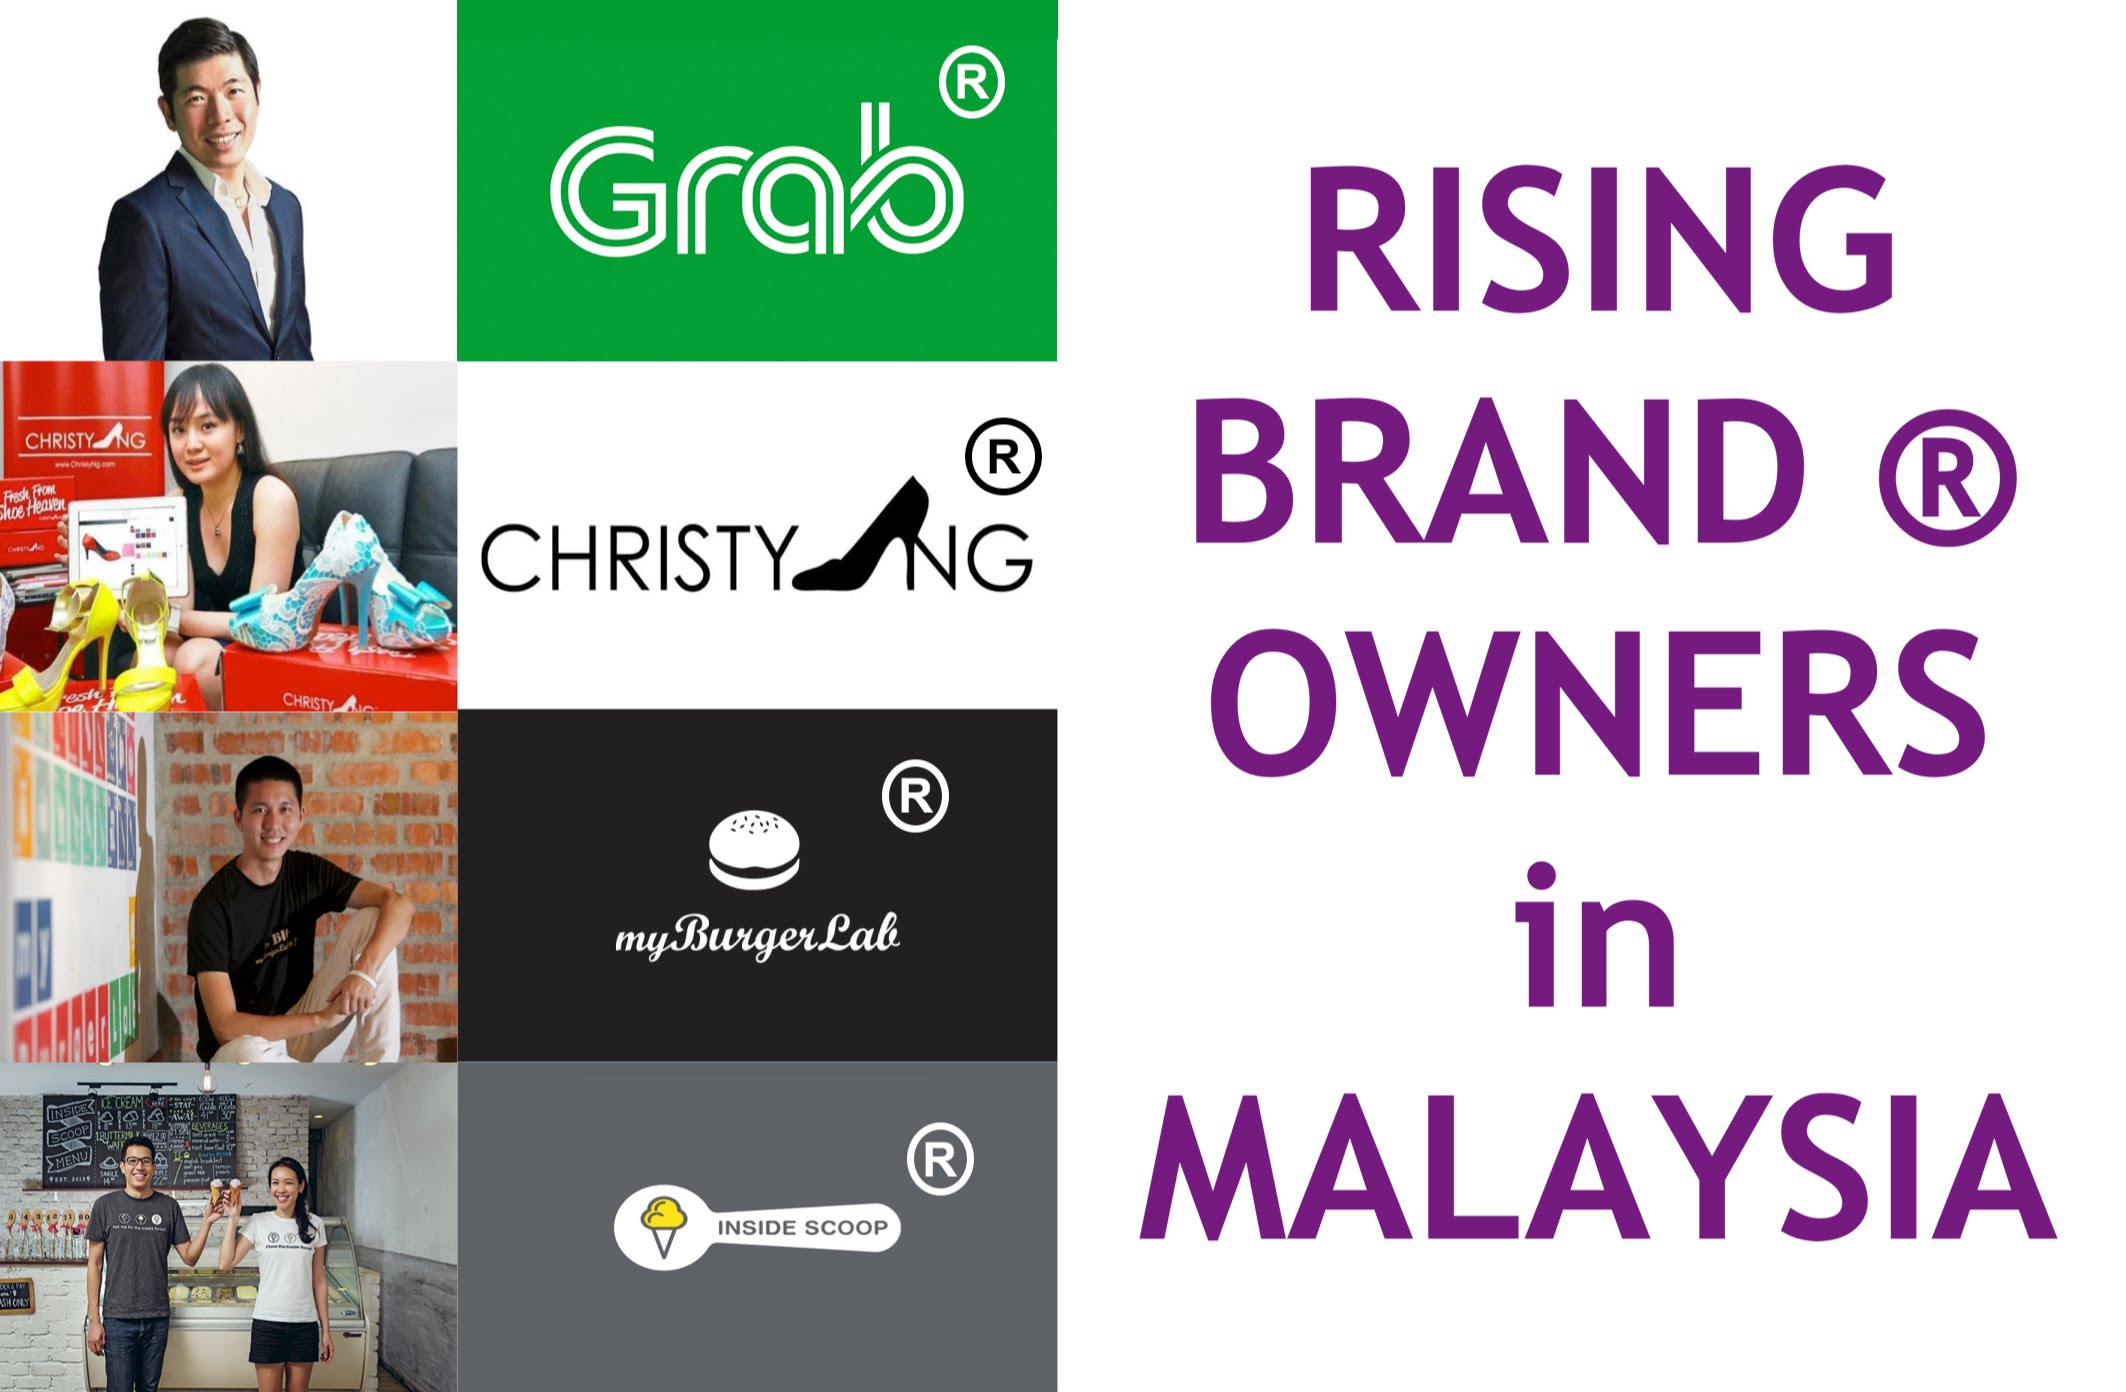 Rising Brand & Trademark Owner In Malaysia